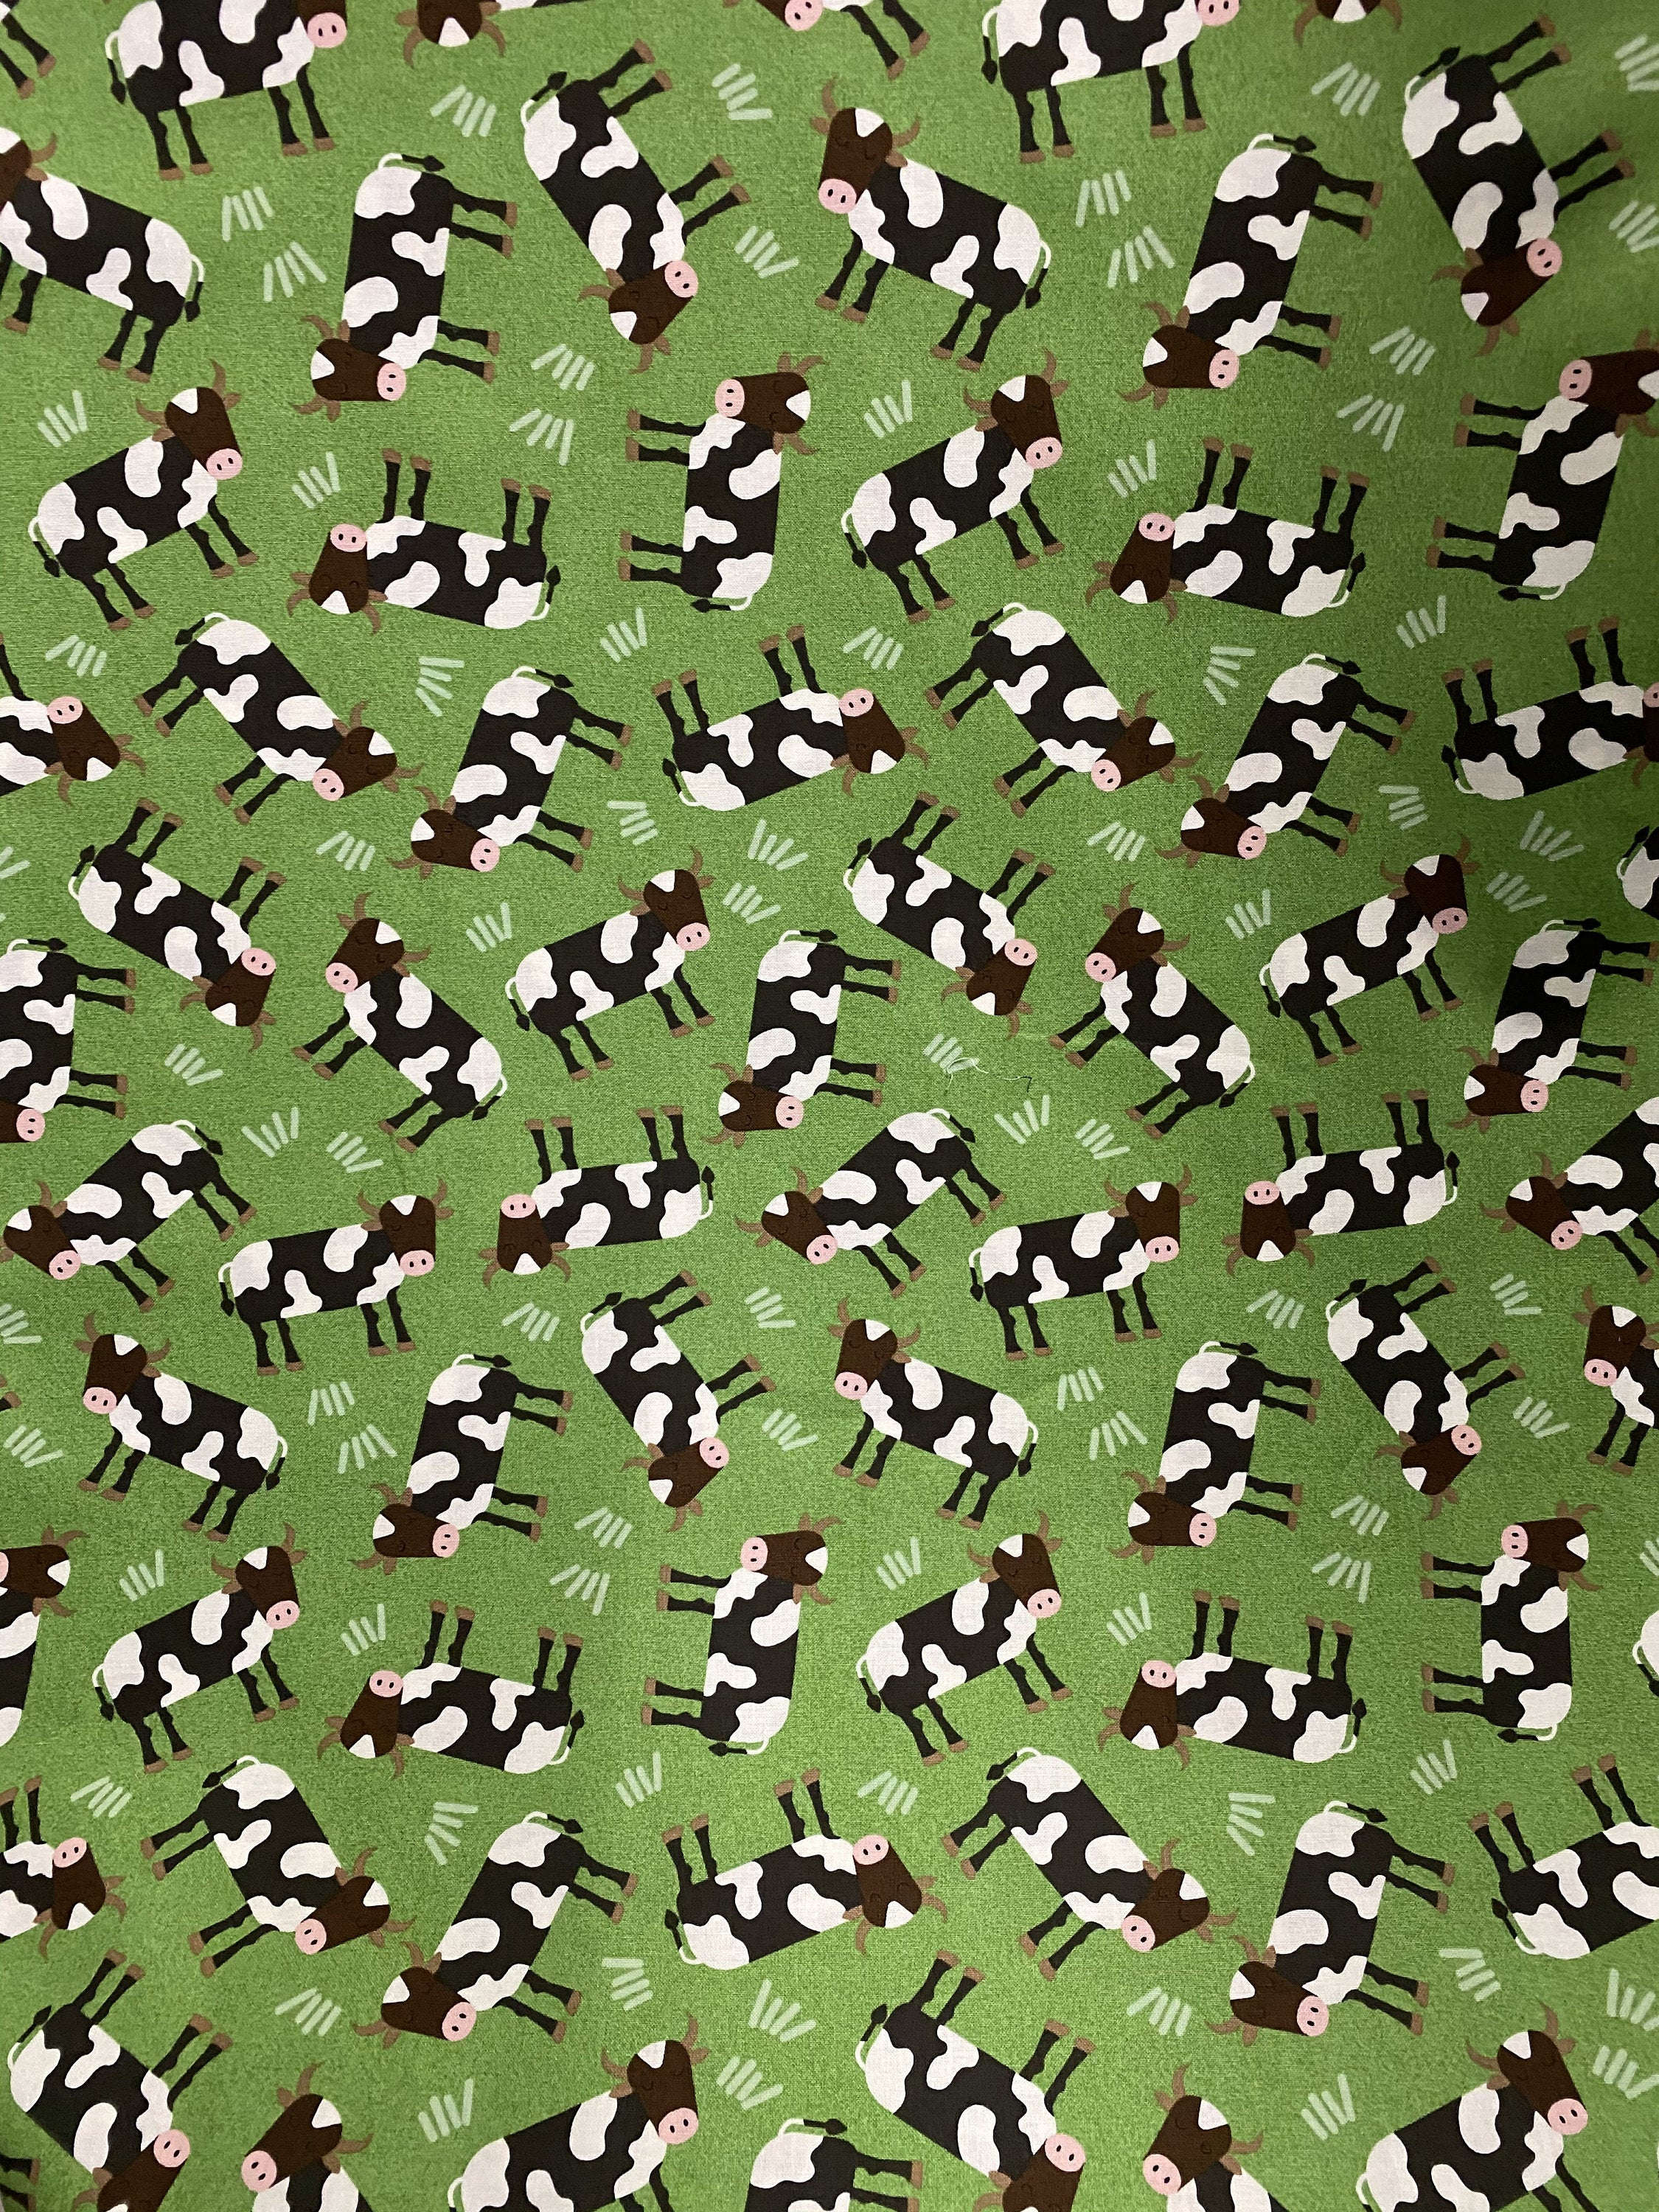 Timeless Treasures Cow Fabric Farm C7117 Brown and White Tossed Cows